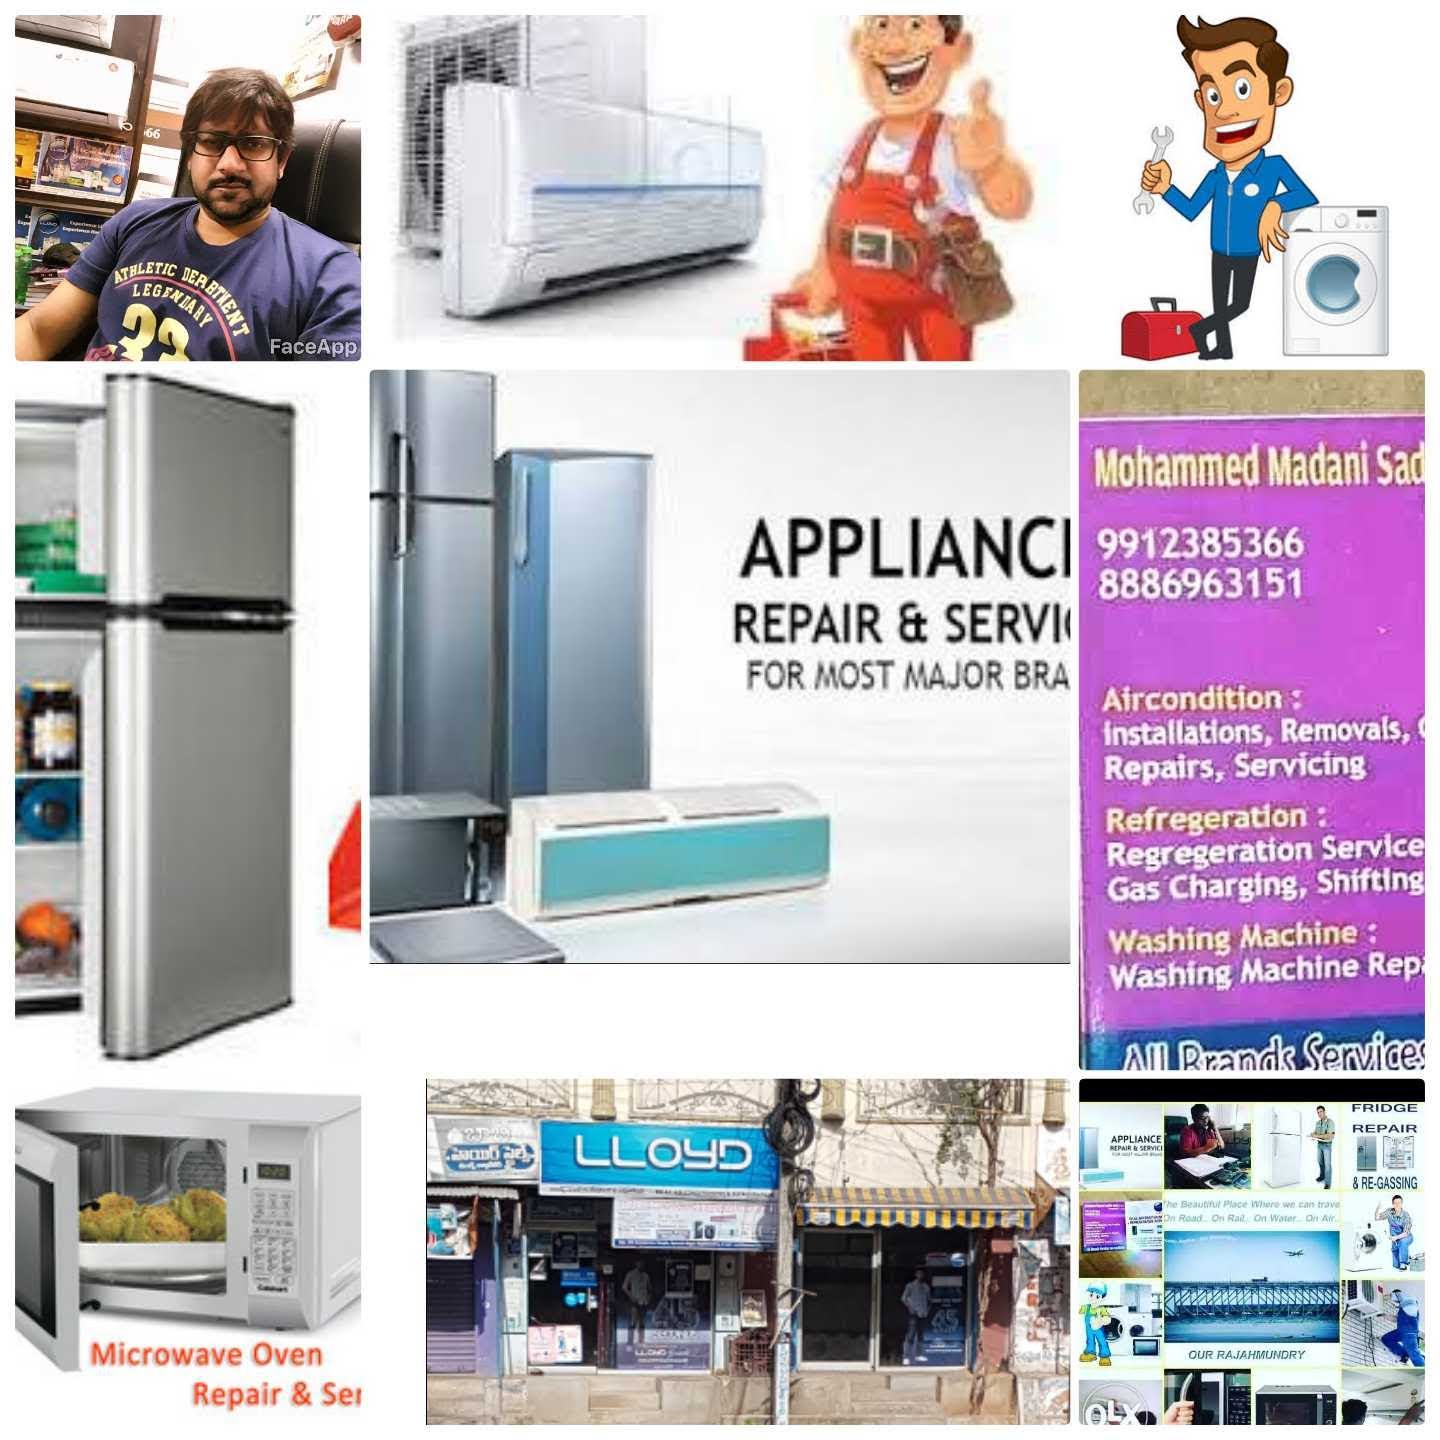 Relax Air Conditioning And Refrigeration Works  in Rajahmundry